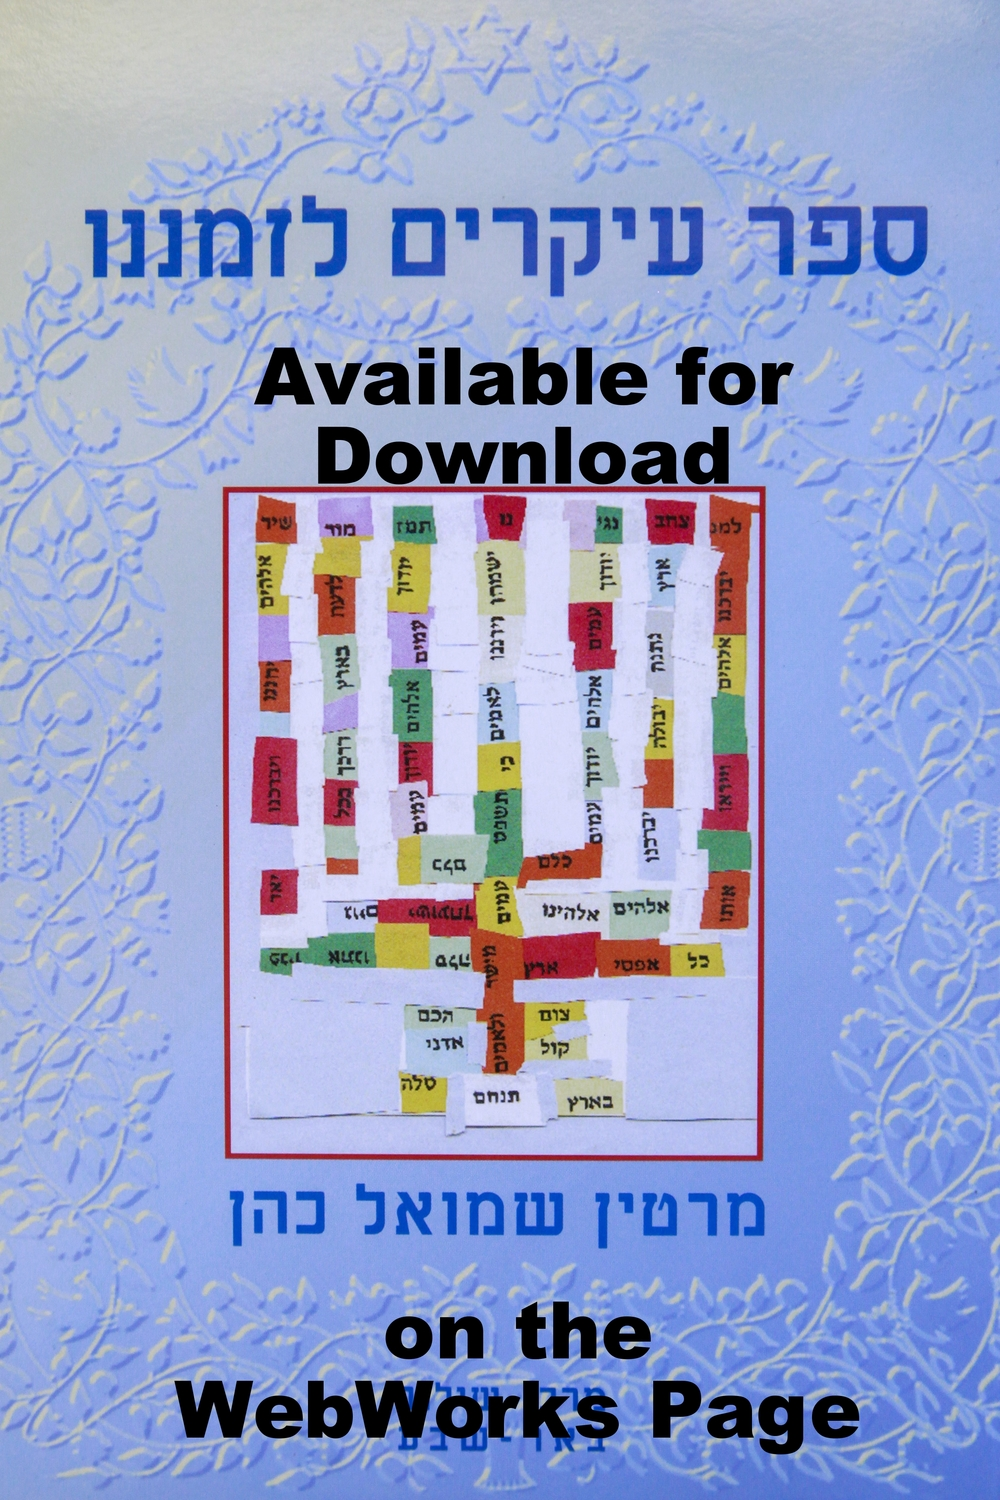 Sefer Ha-ikarim Cover.JPG